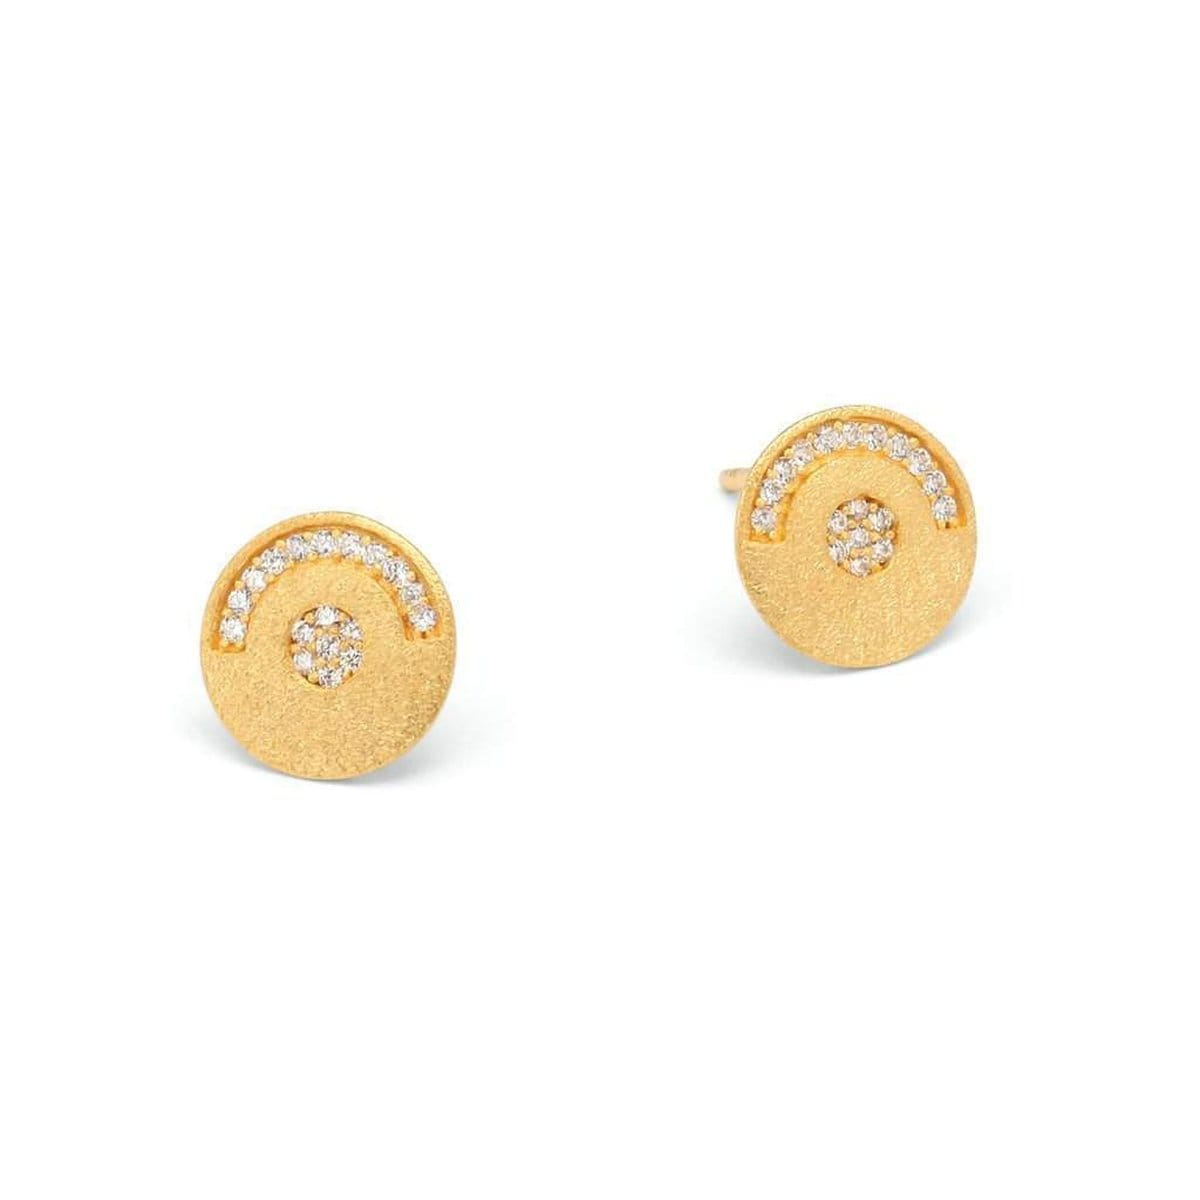 Sunny Earrings - 19154156